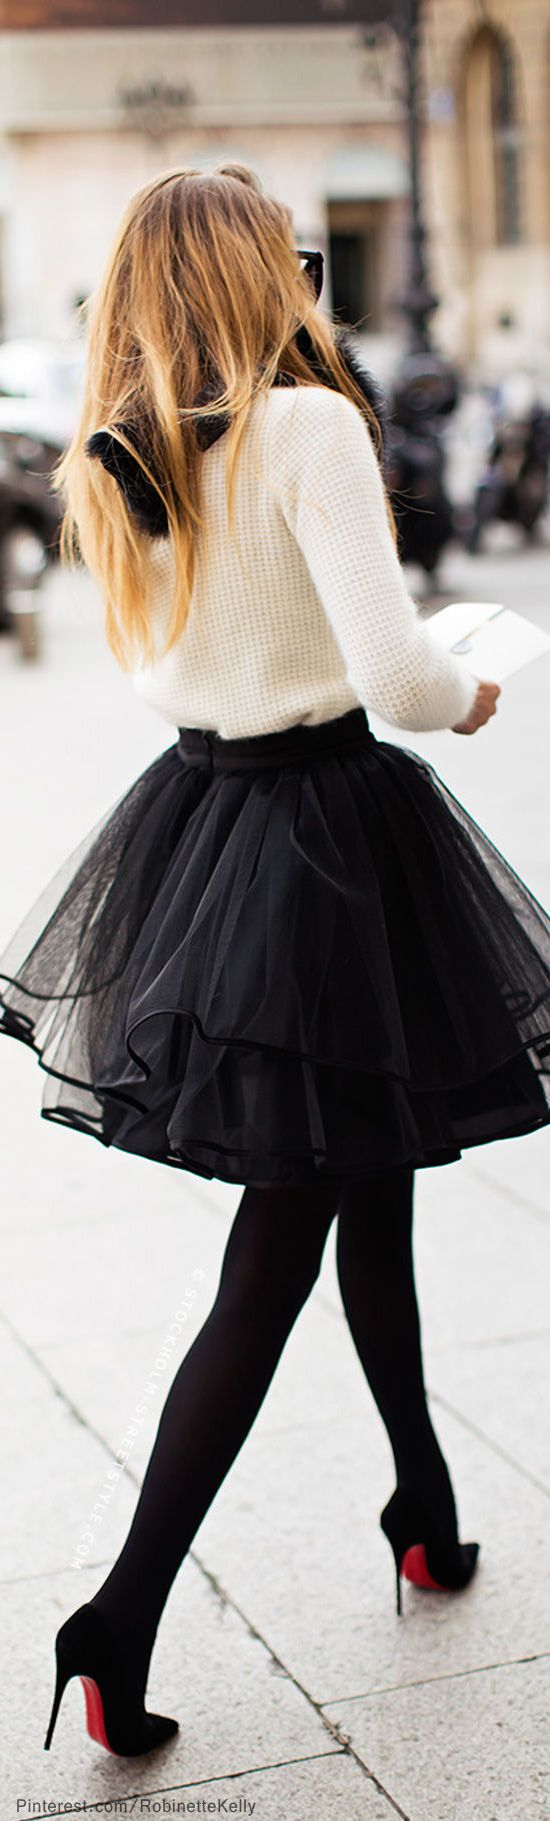 best images about My Style on Pinterest Blazers Skirts and